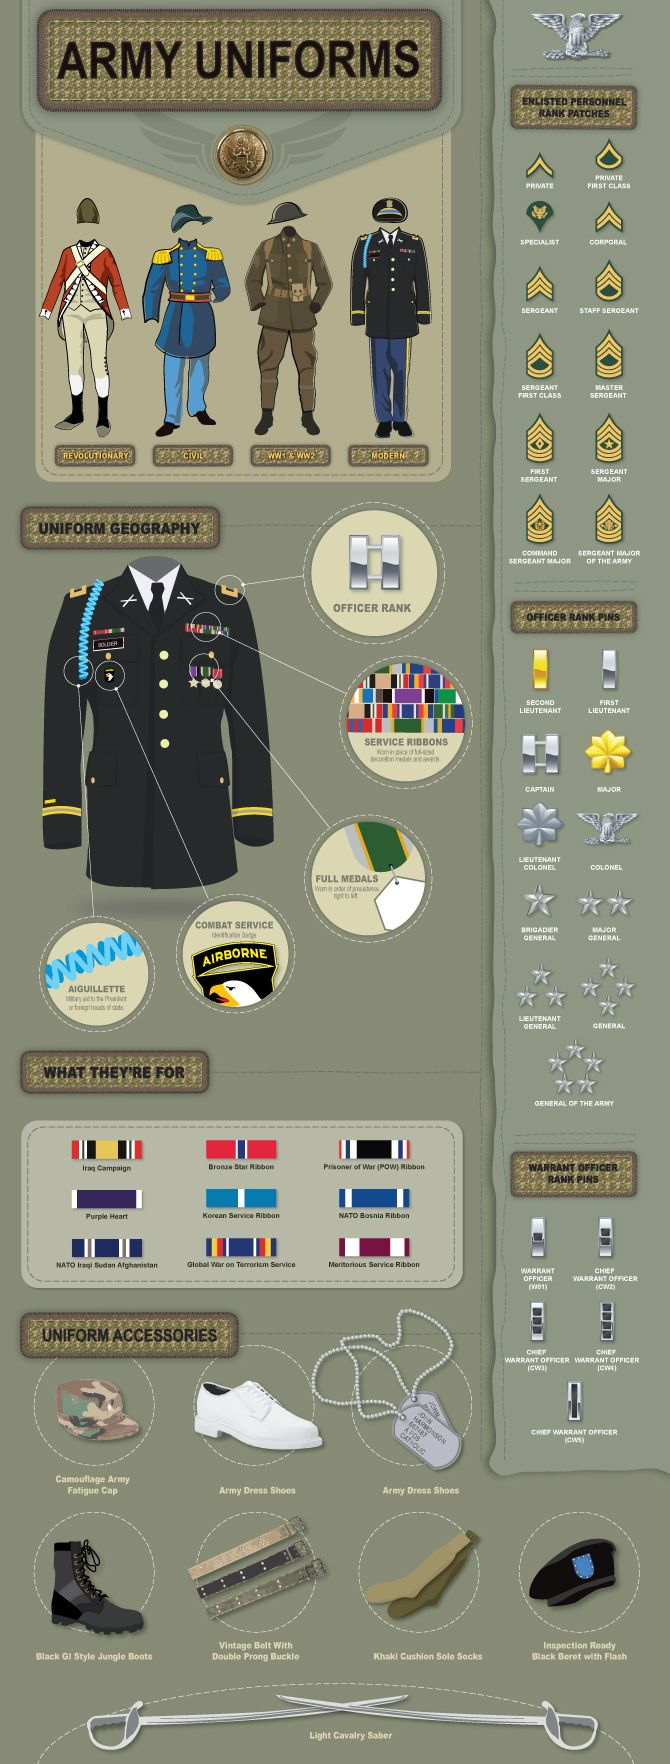 a military uniform explained.